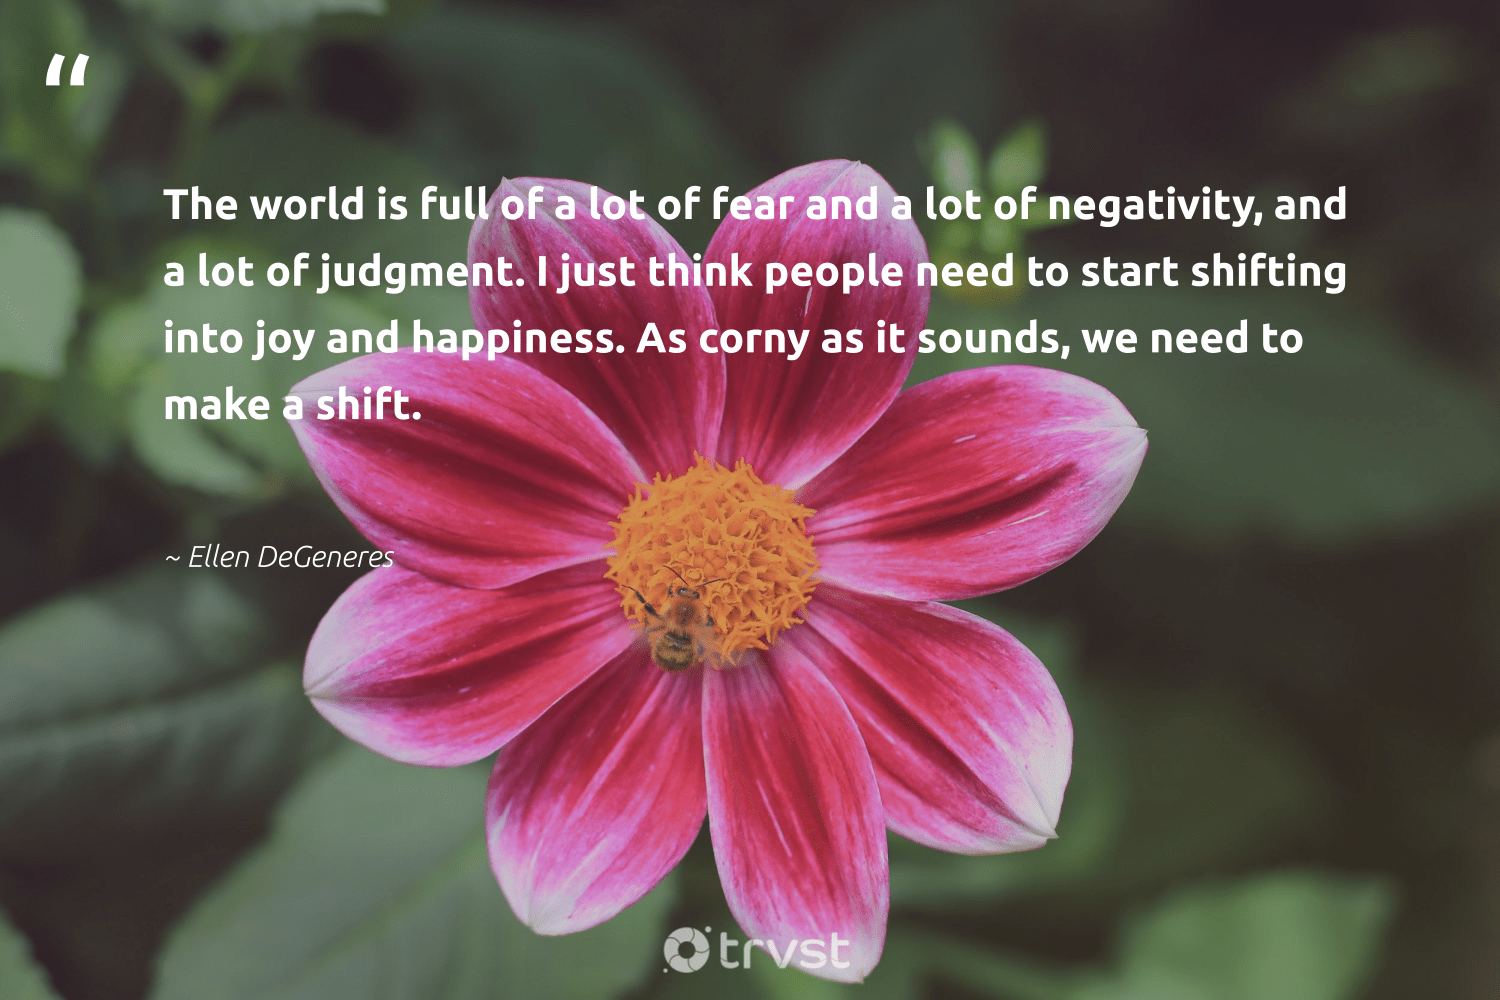 """""""The world is full of a lot of fear and a lot of negativity, and a lot of judgment. I just think people need to start shifting into joy and happiness. As corny as it sounds, we need to make a shift.""""  - Ellen DeGeneres #trvst #quotes #happiness #nevergiveup #ecoconscious #mindset #changetheworld #health #bethechange #togetherwecan #socialimpact #begreat"""